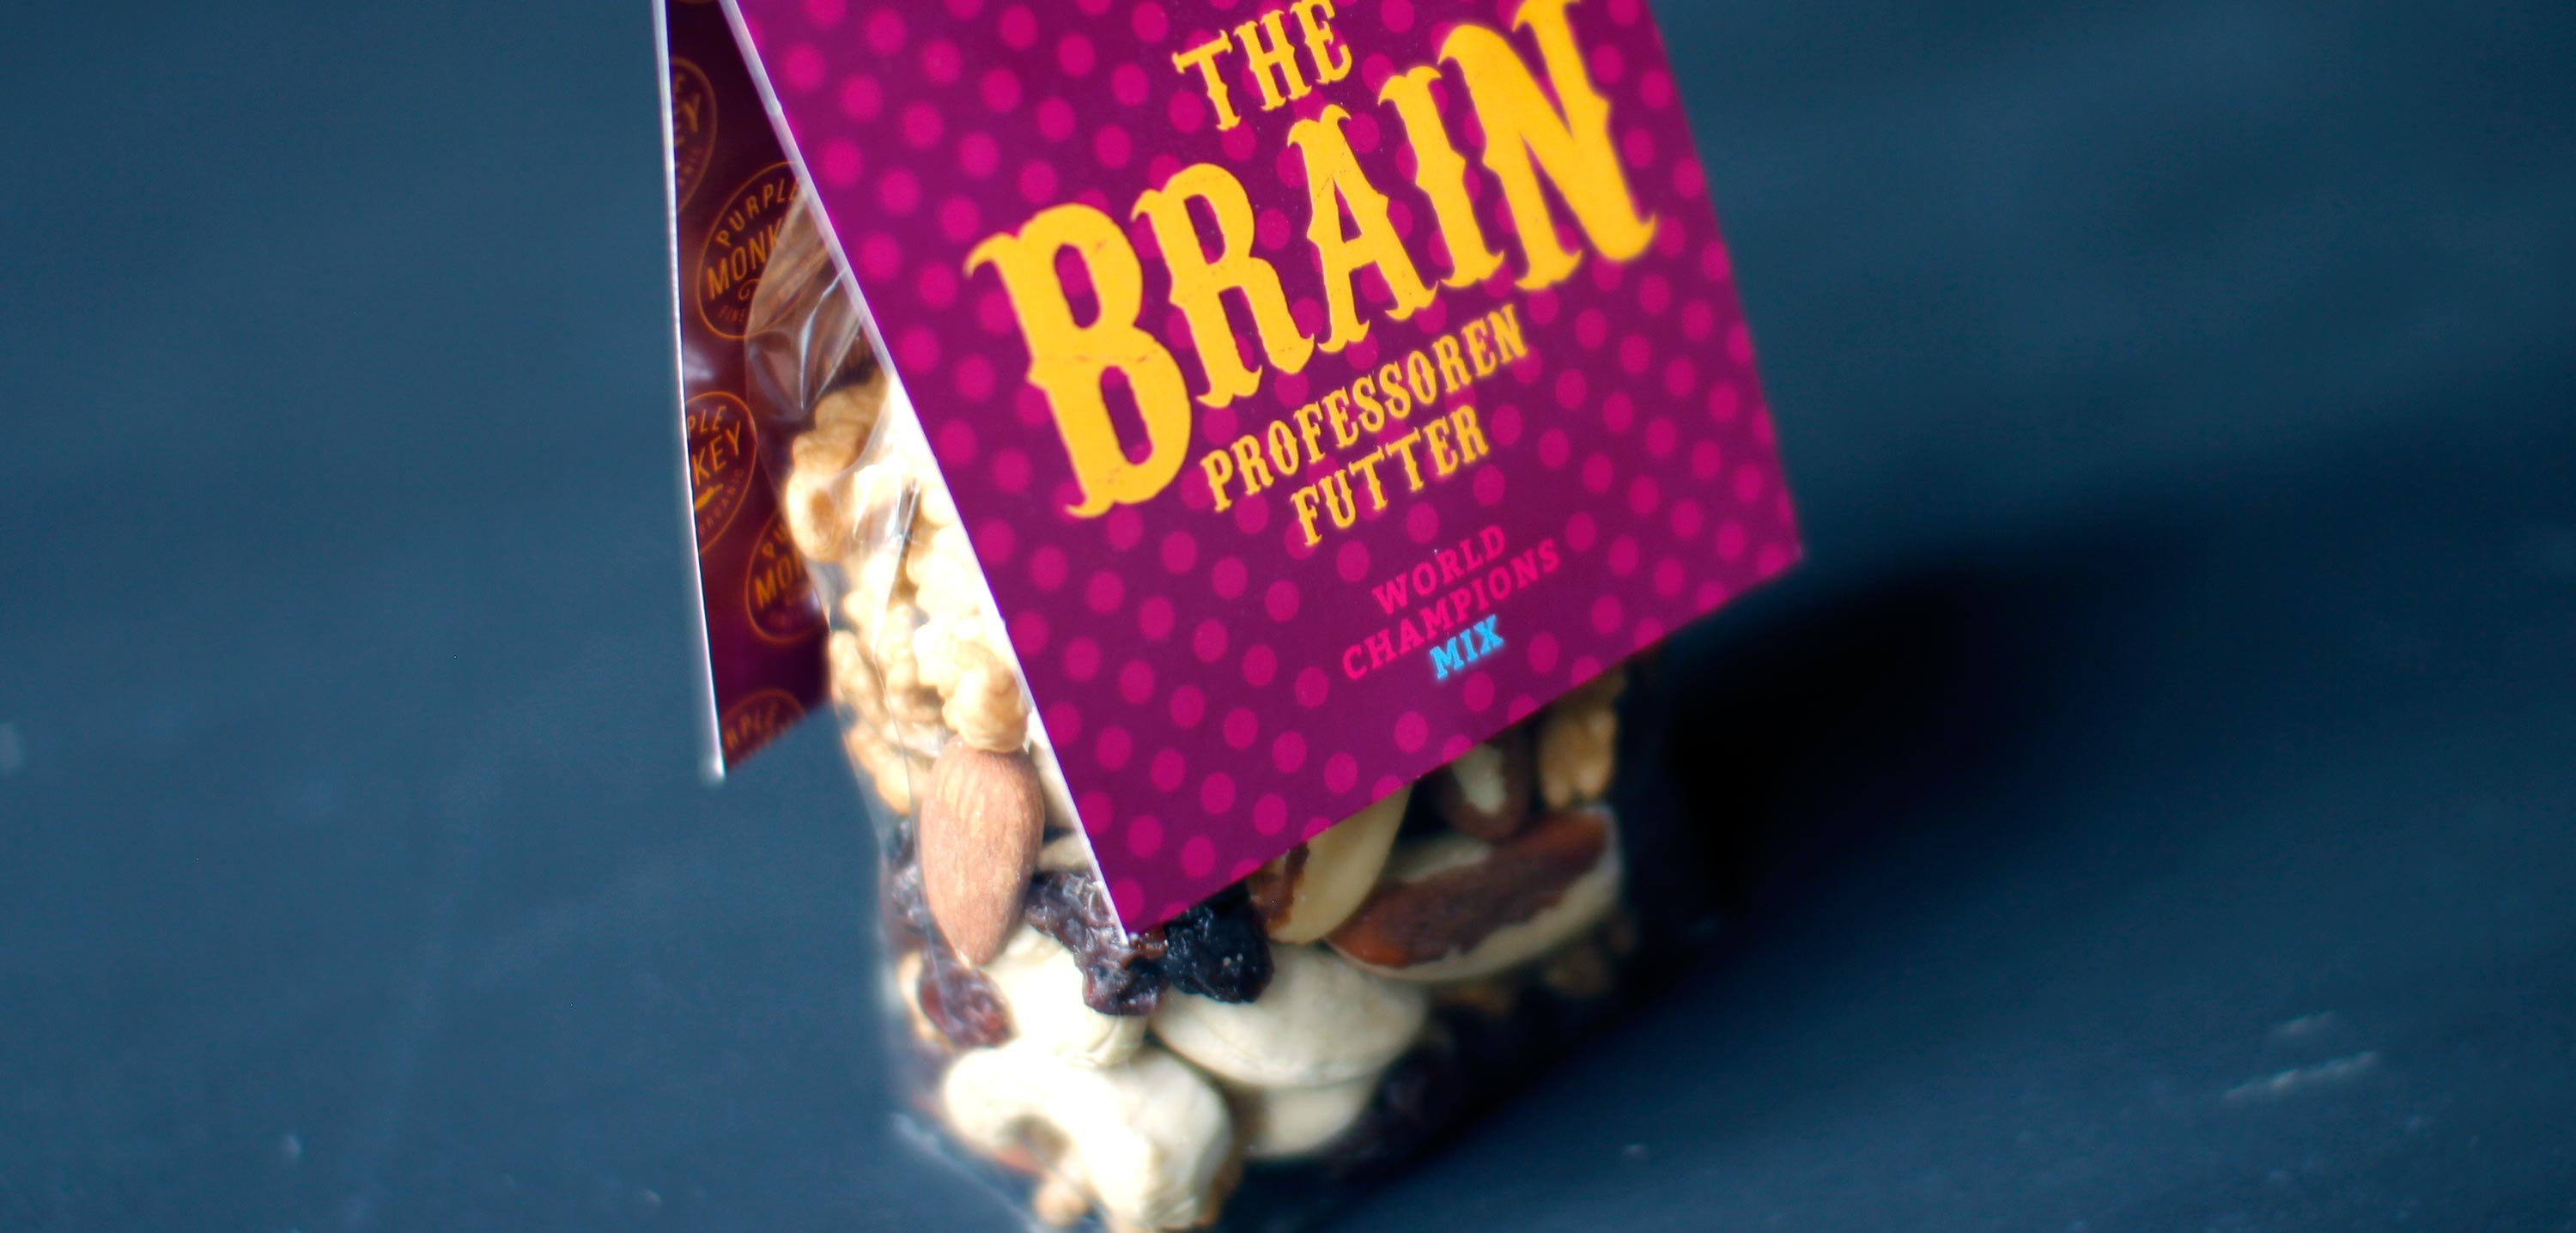 Purple-Monkey-Fruits-and-nuts-mix-The-Brain-bio-organic-packaging-klemm-design